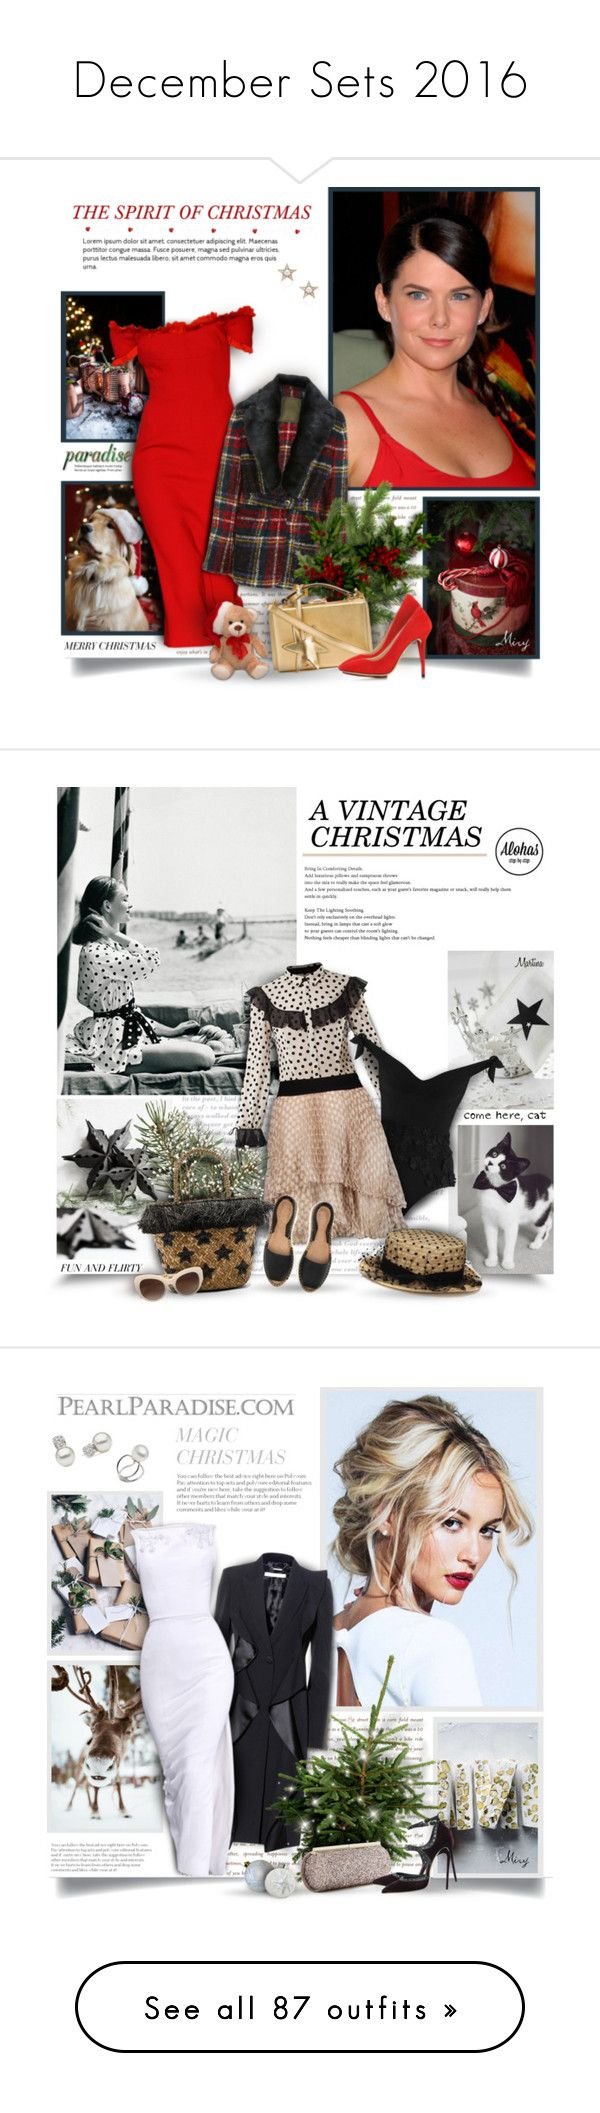 """""""December Sets 2016"""" by thewondersoffashion ❤ liked on Polyvore featuring Prada, Dolce&Gabbana, Mr & Mrs Italy, Mark Cross, Selim Mouzannar, Charlotte Olympia, Victor Xenia, Zimmermann, Enza Costa and Kayu"""